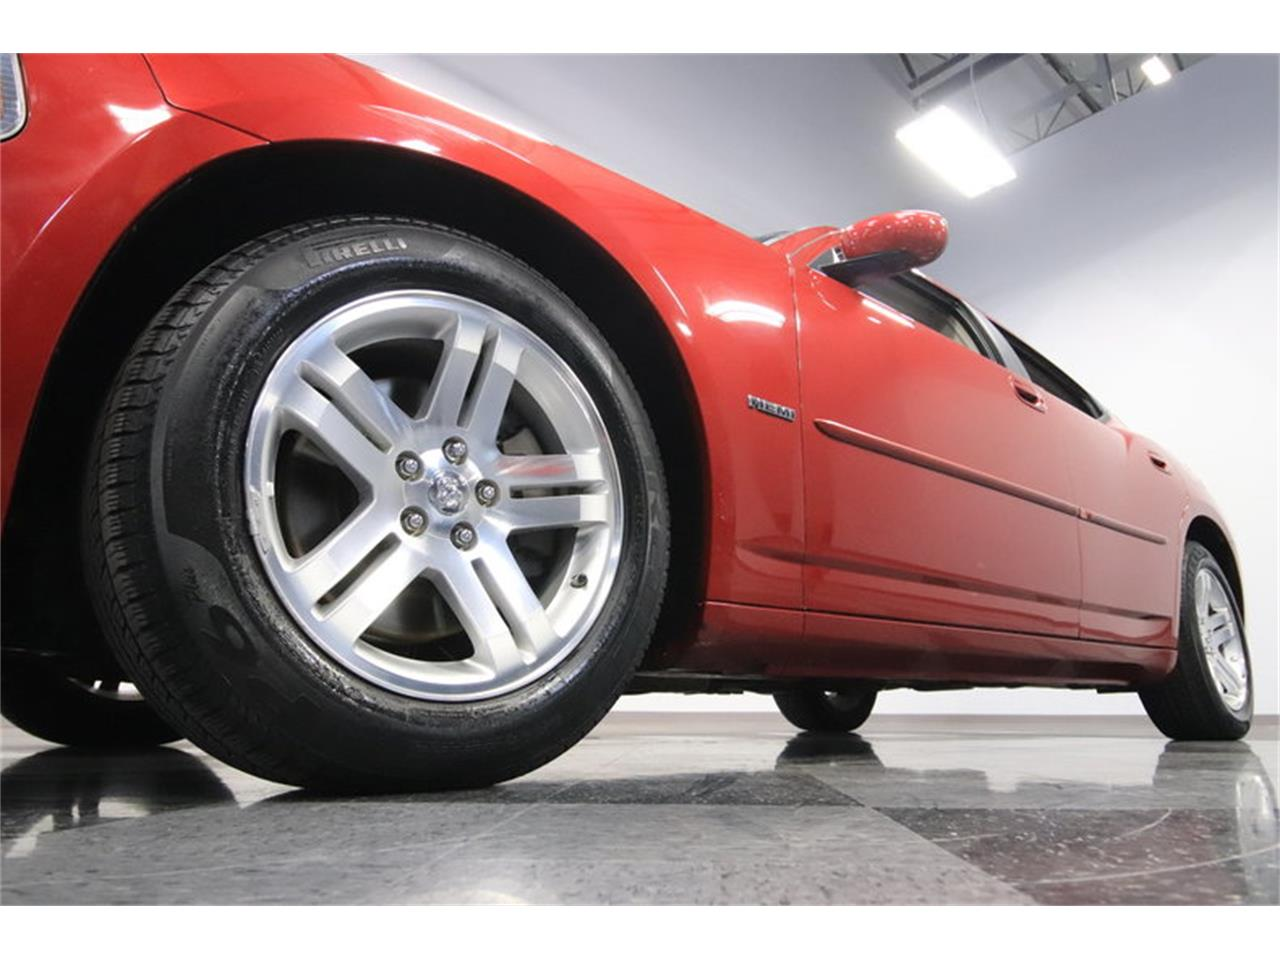 Large Picture of '06 Dodge Charger R/T located in Mesa Arizona - $8,995.00 Offered by Streetside Classics - Phoenix - MZDF